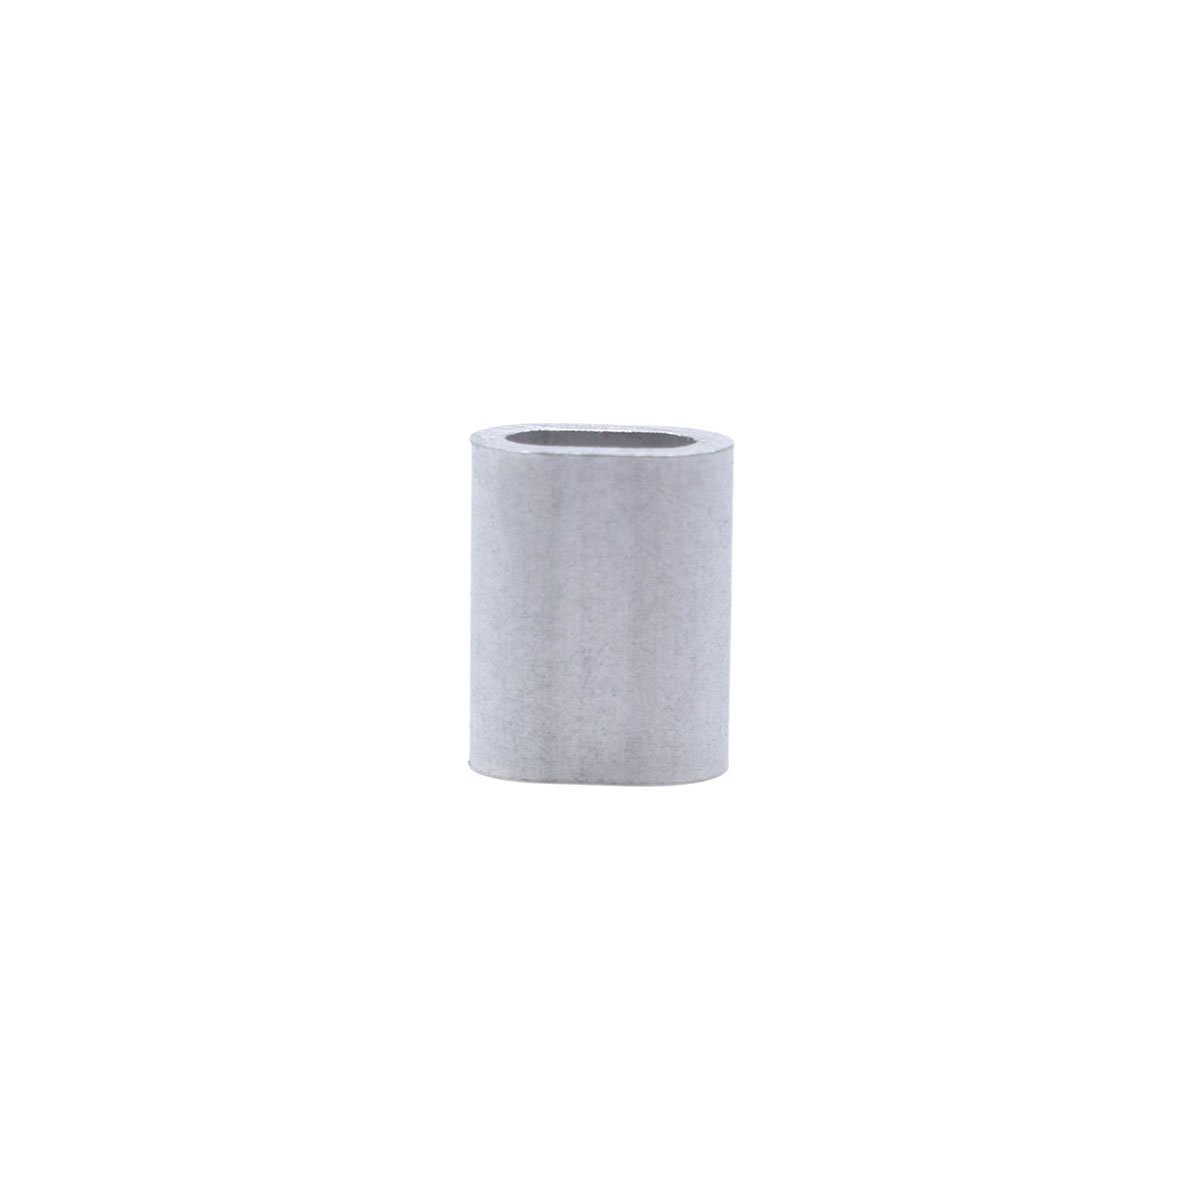 "Aluminum Sleeves Clip Single Oval Hole Cable Crimps for 2.5mm (3/32"") Wire Rope Cable 100 Pack KEEJEA 3-2.5"